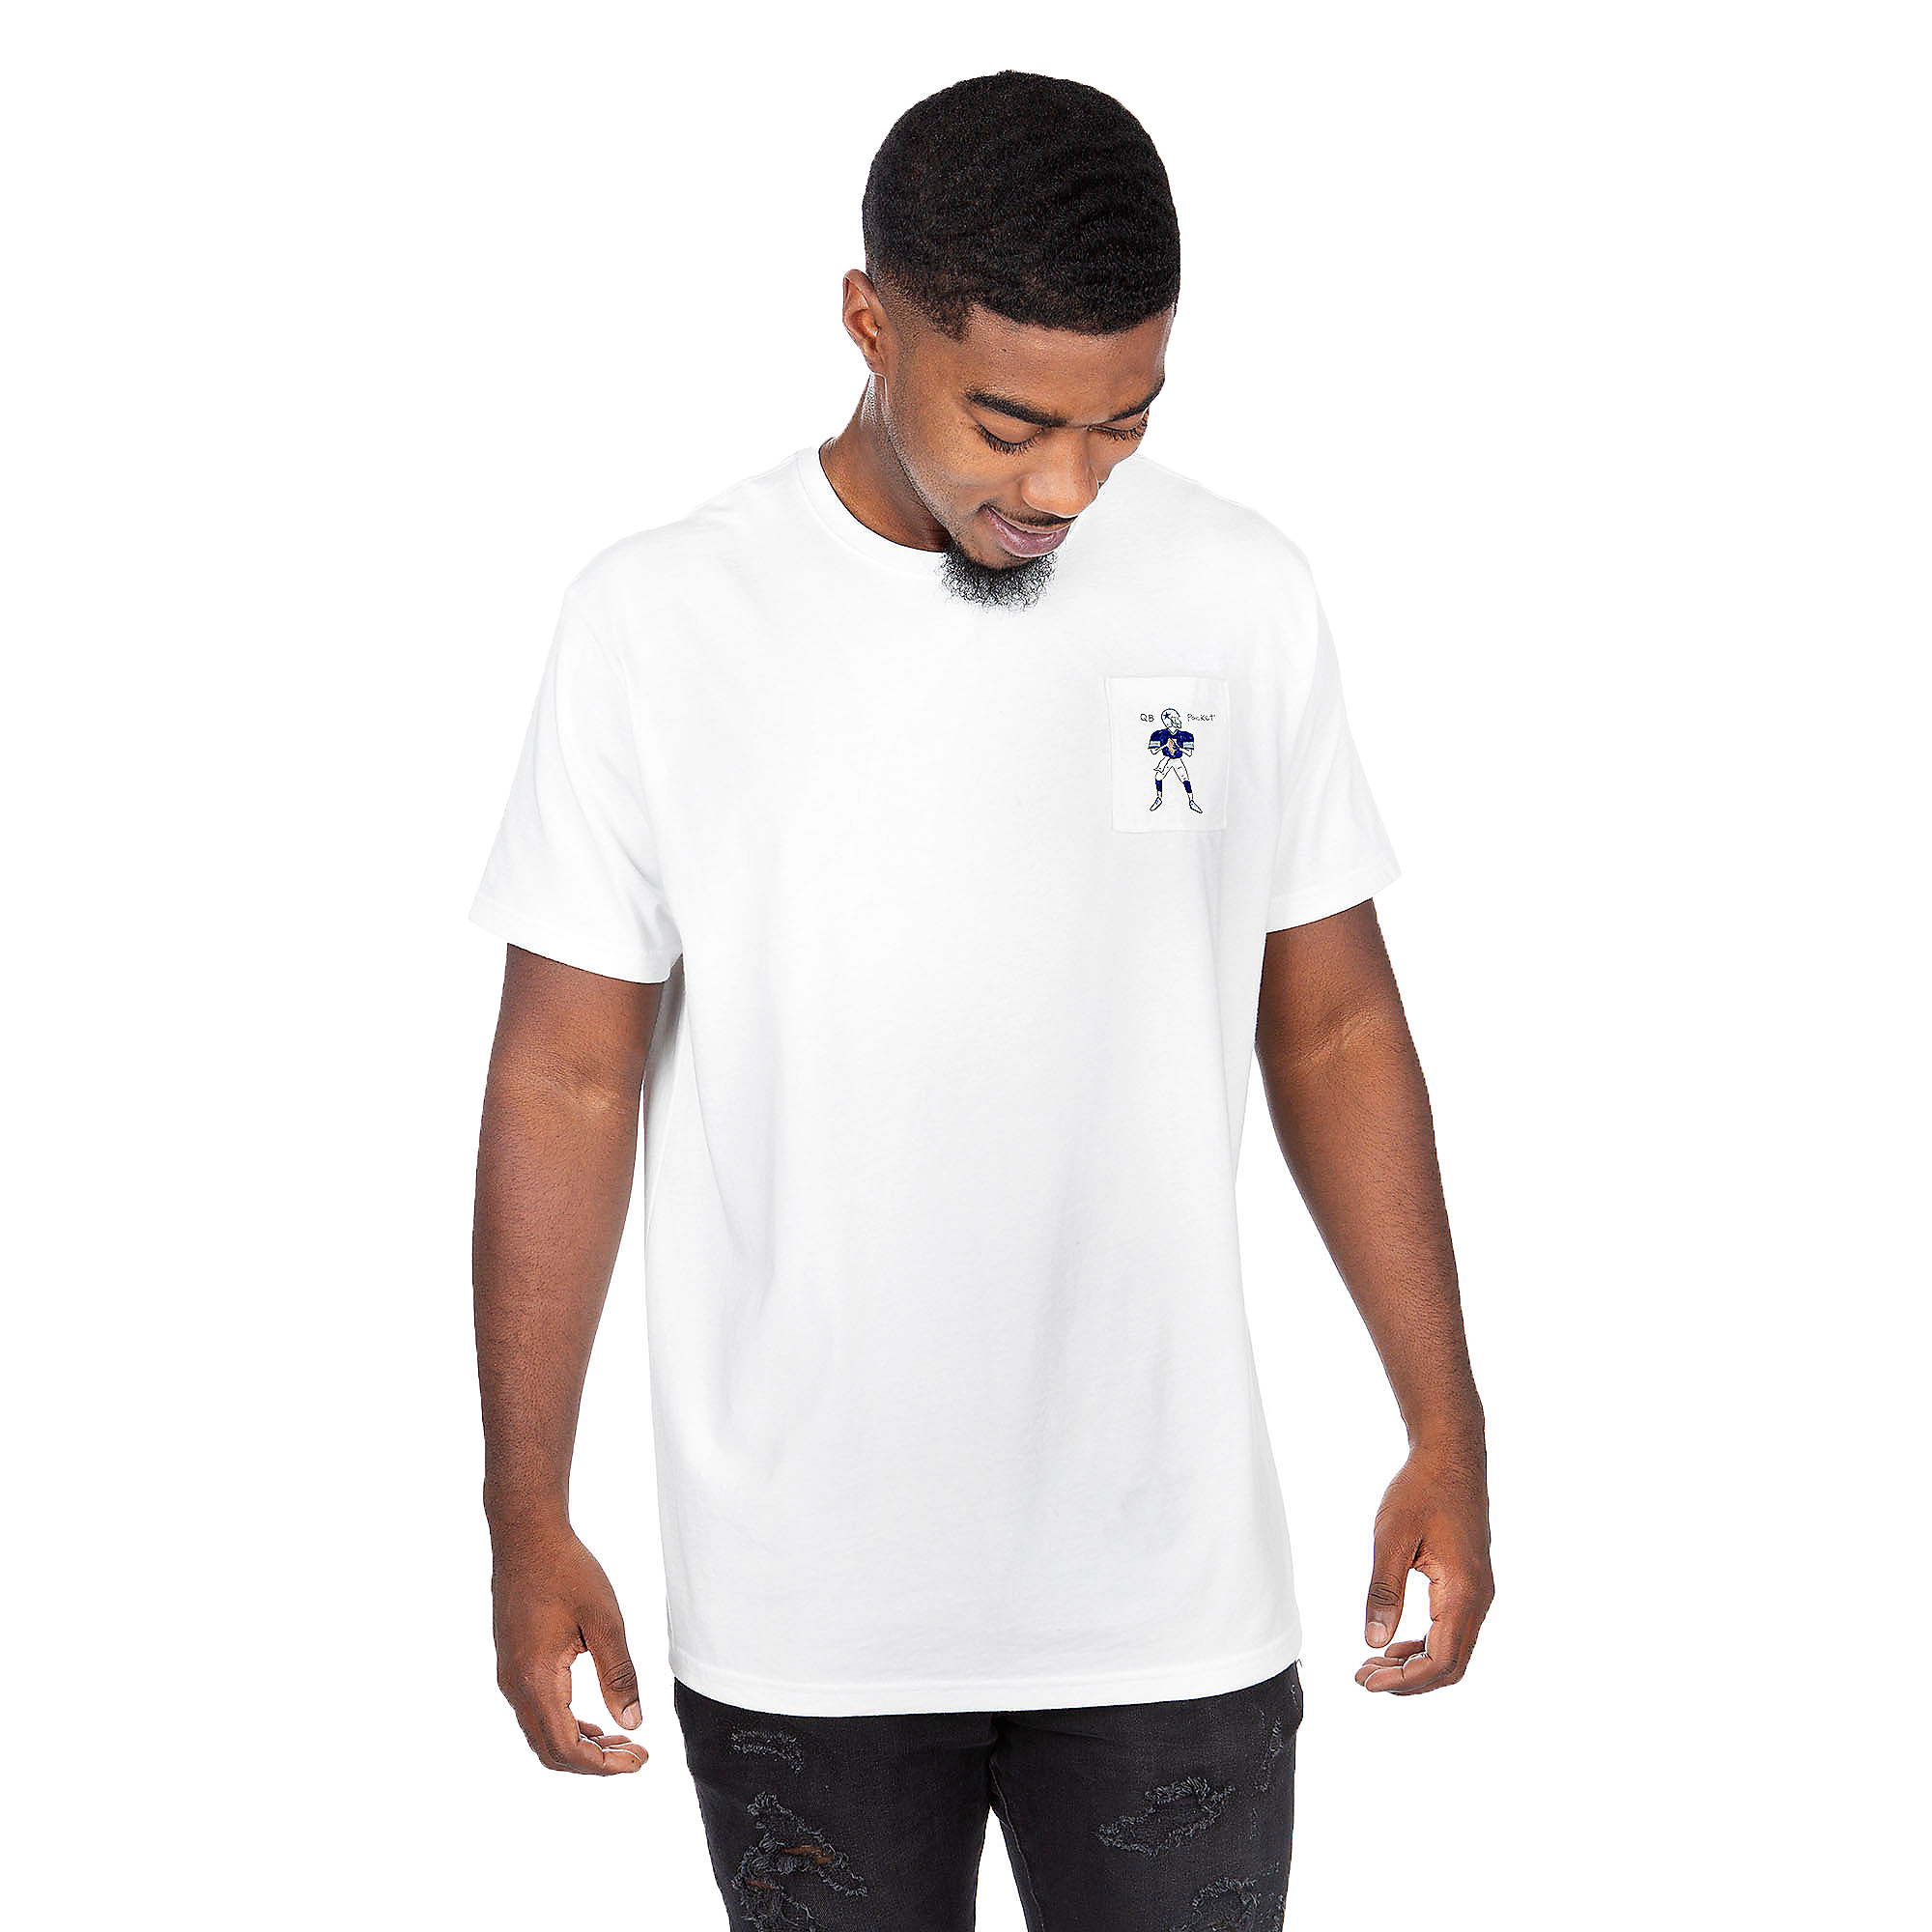 Dallas Cowboys Unfortunate Portrait Unisex QB Pocket Tee